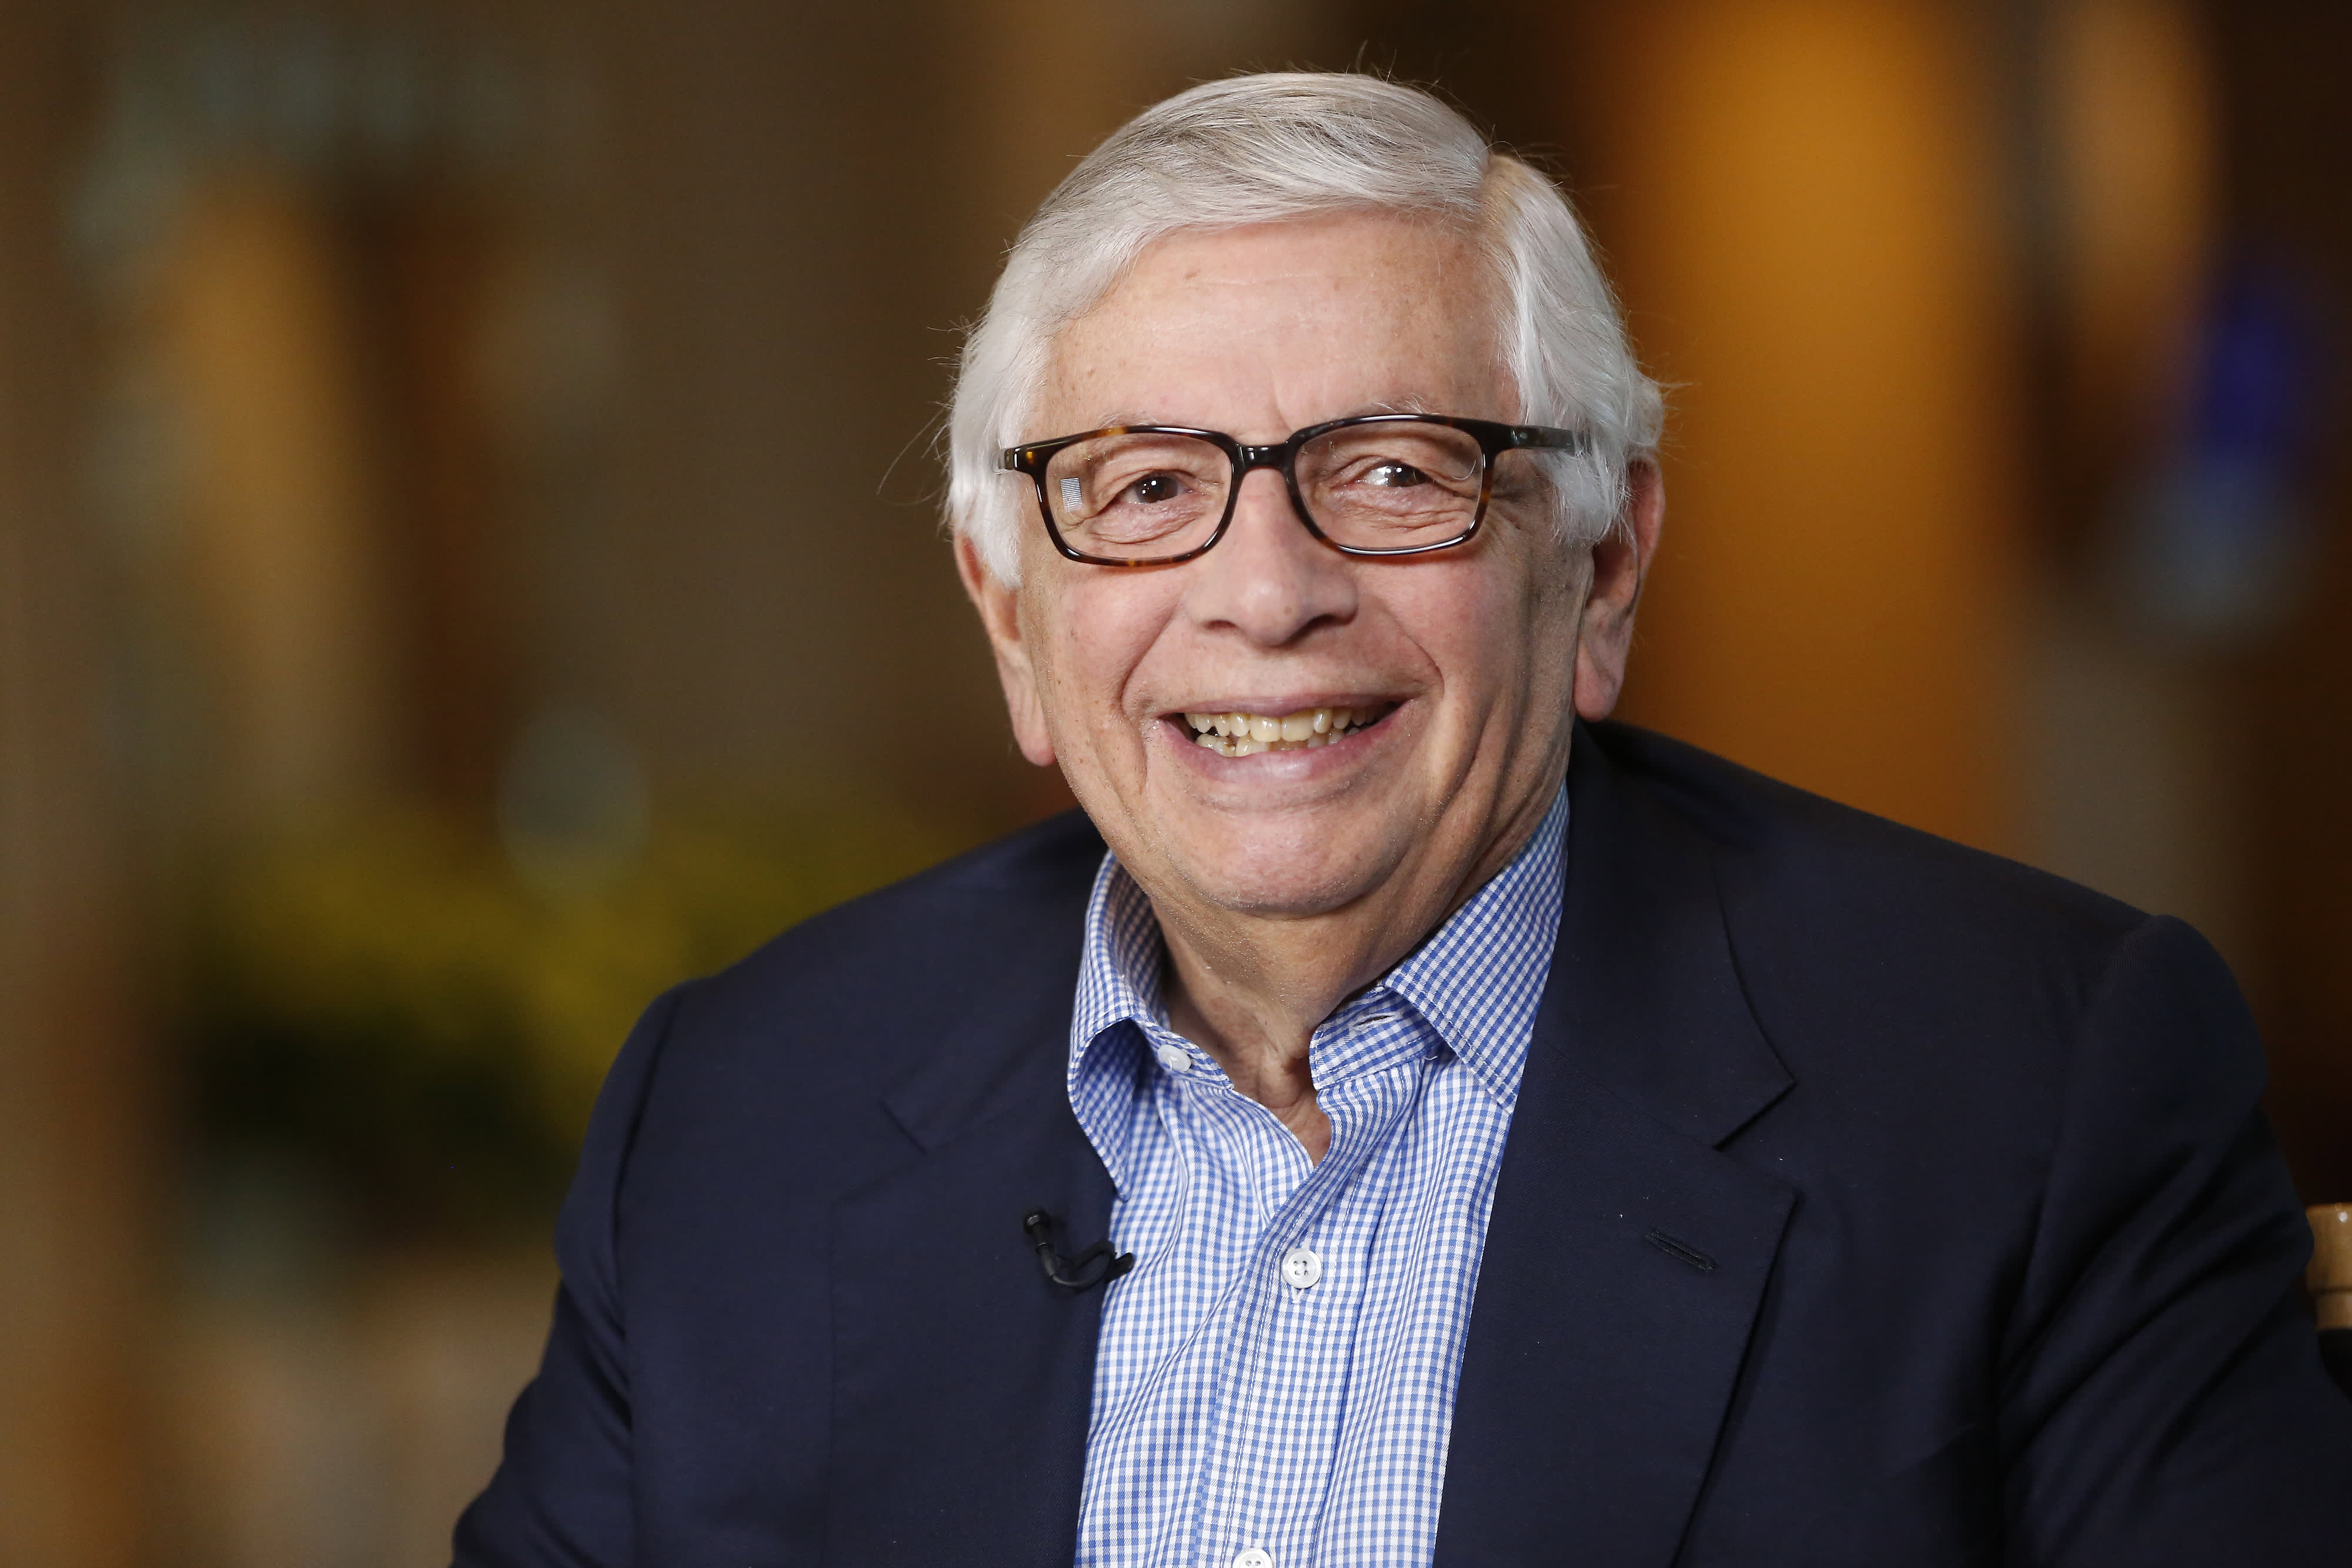 Former NBA commissioner David Stern is in serious condition after surgery for a brain hemorrhage